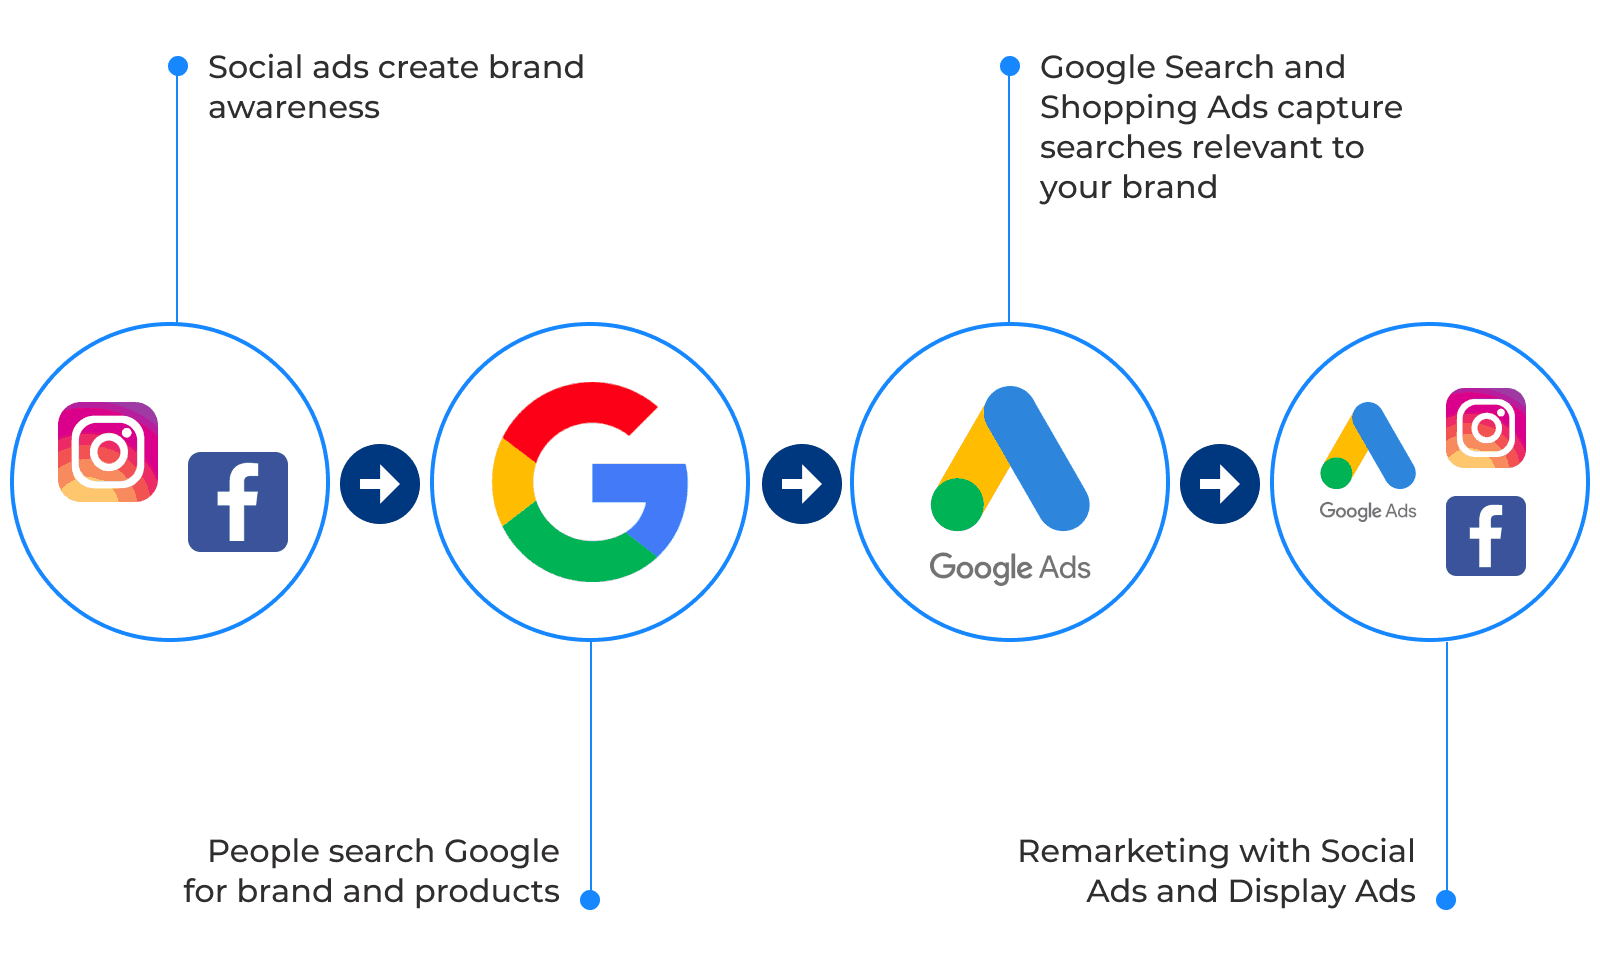 A horizontal flow chart presented here as a numbered list. 1. Social ads create brand awareness. 2. People search Google for brand and products. 3. Google search and shopping ads capture searches relevant to your brand. 4. Remarketing with social ads and display ads.